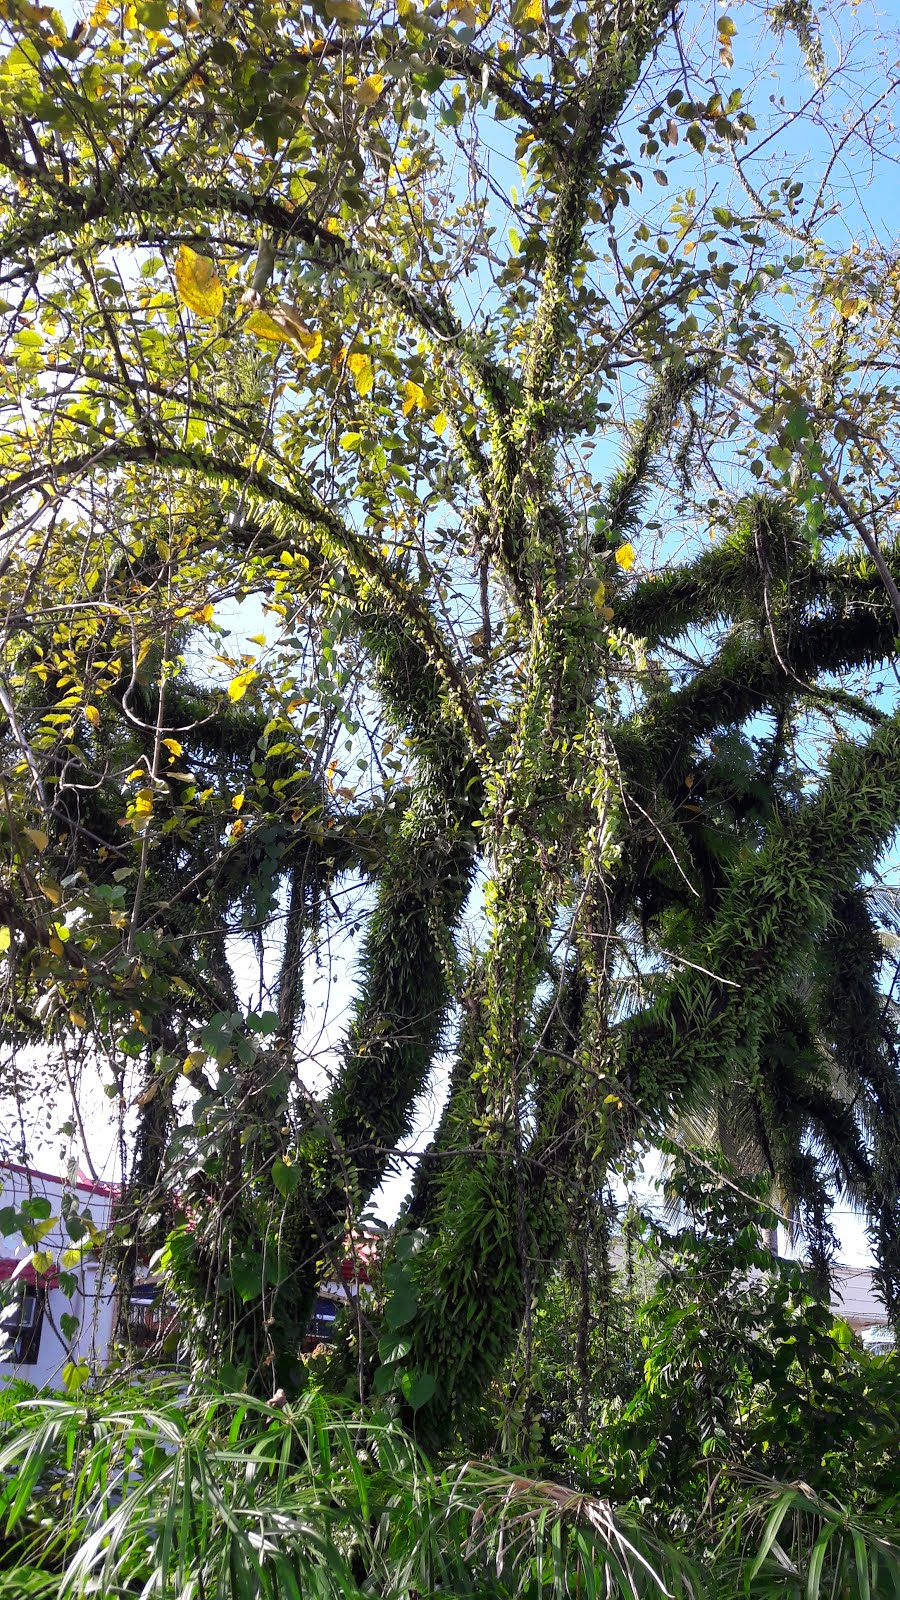 OUR PHILIPPINE TREES